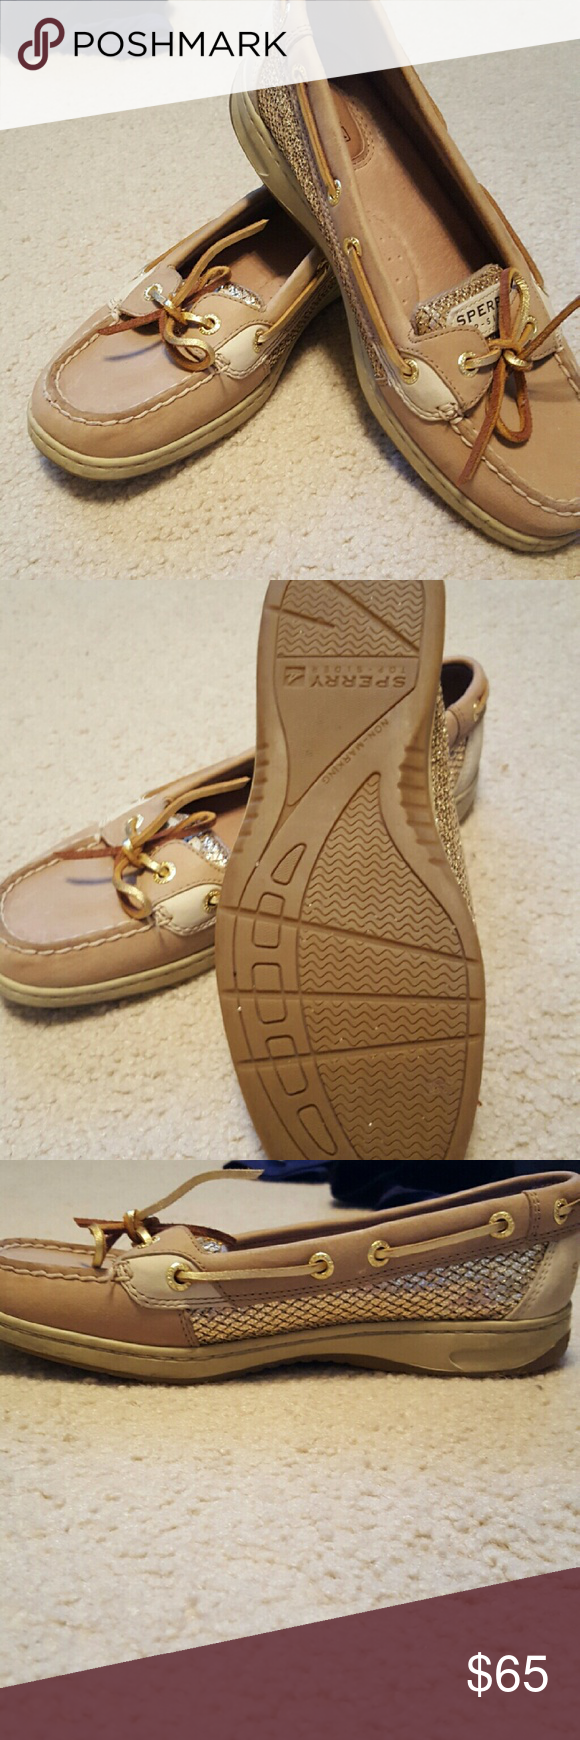 Sperry low top shoes. Boot clipart boat shoe